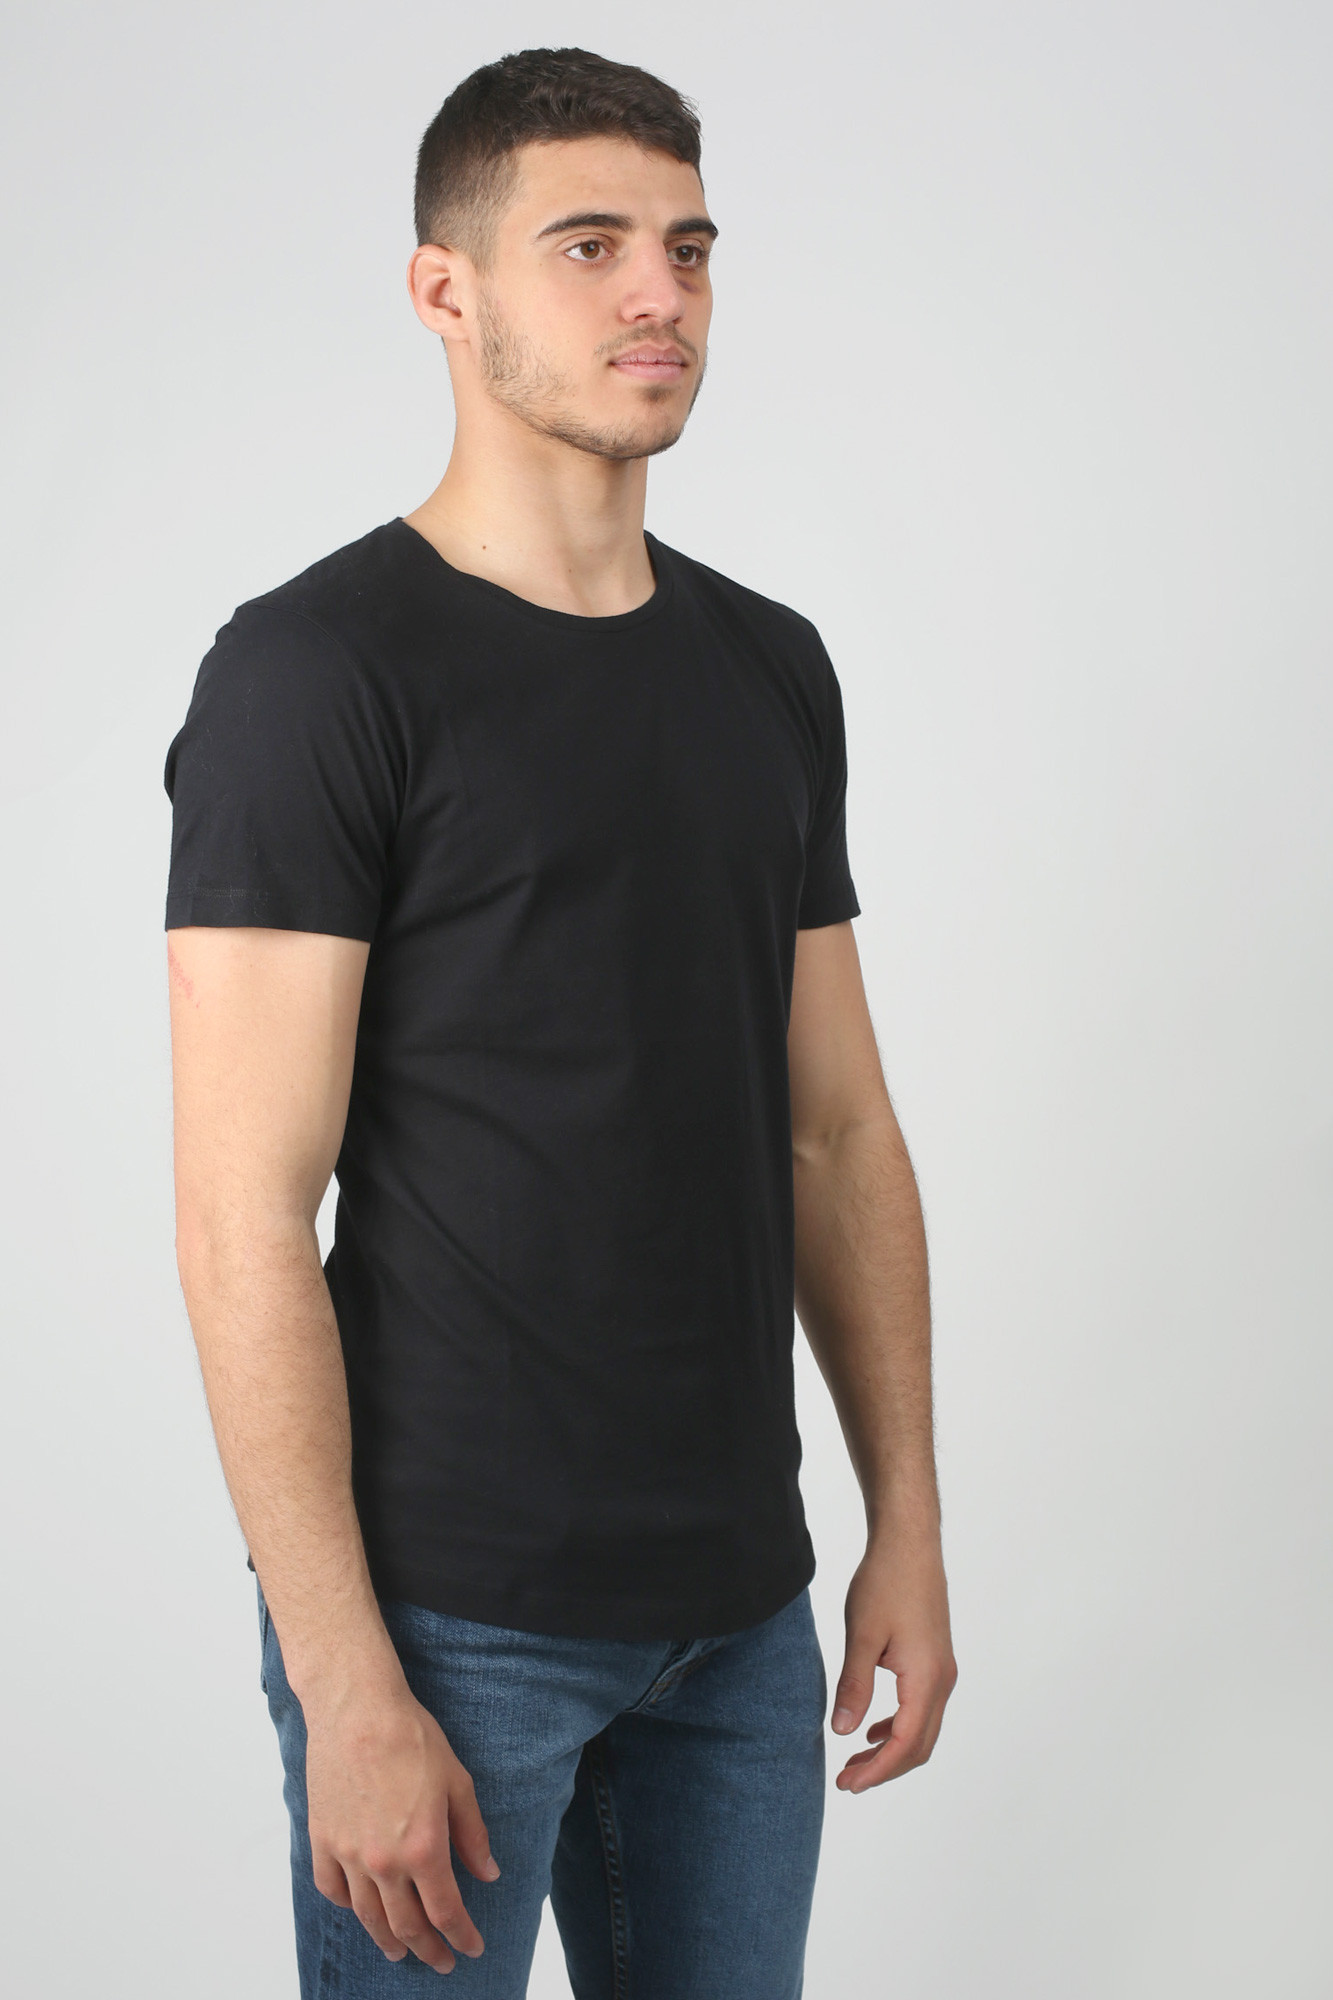 T-SHIRT ORLEBAR BROWN NOIR OBT-BLACK